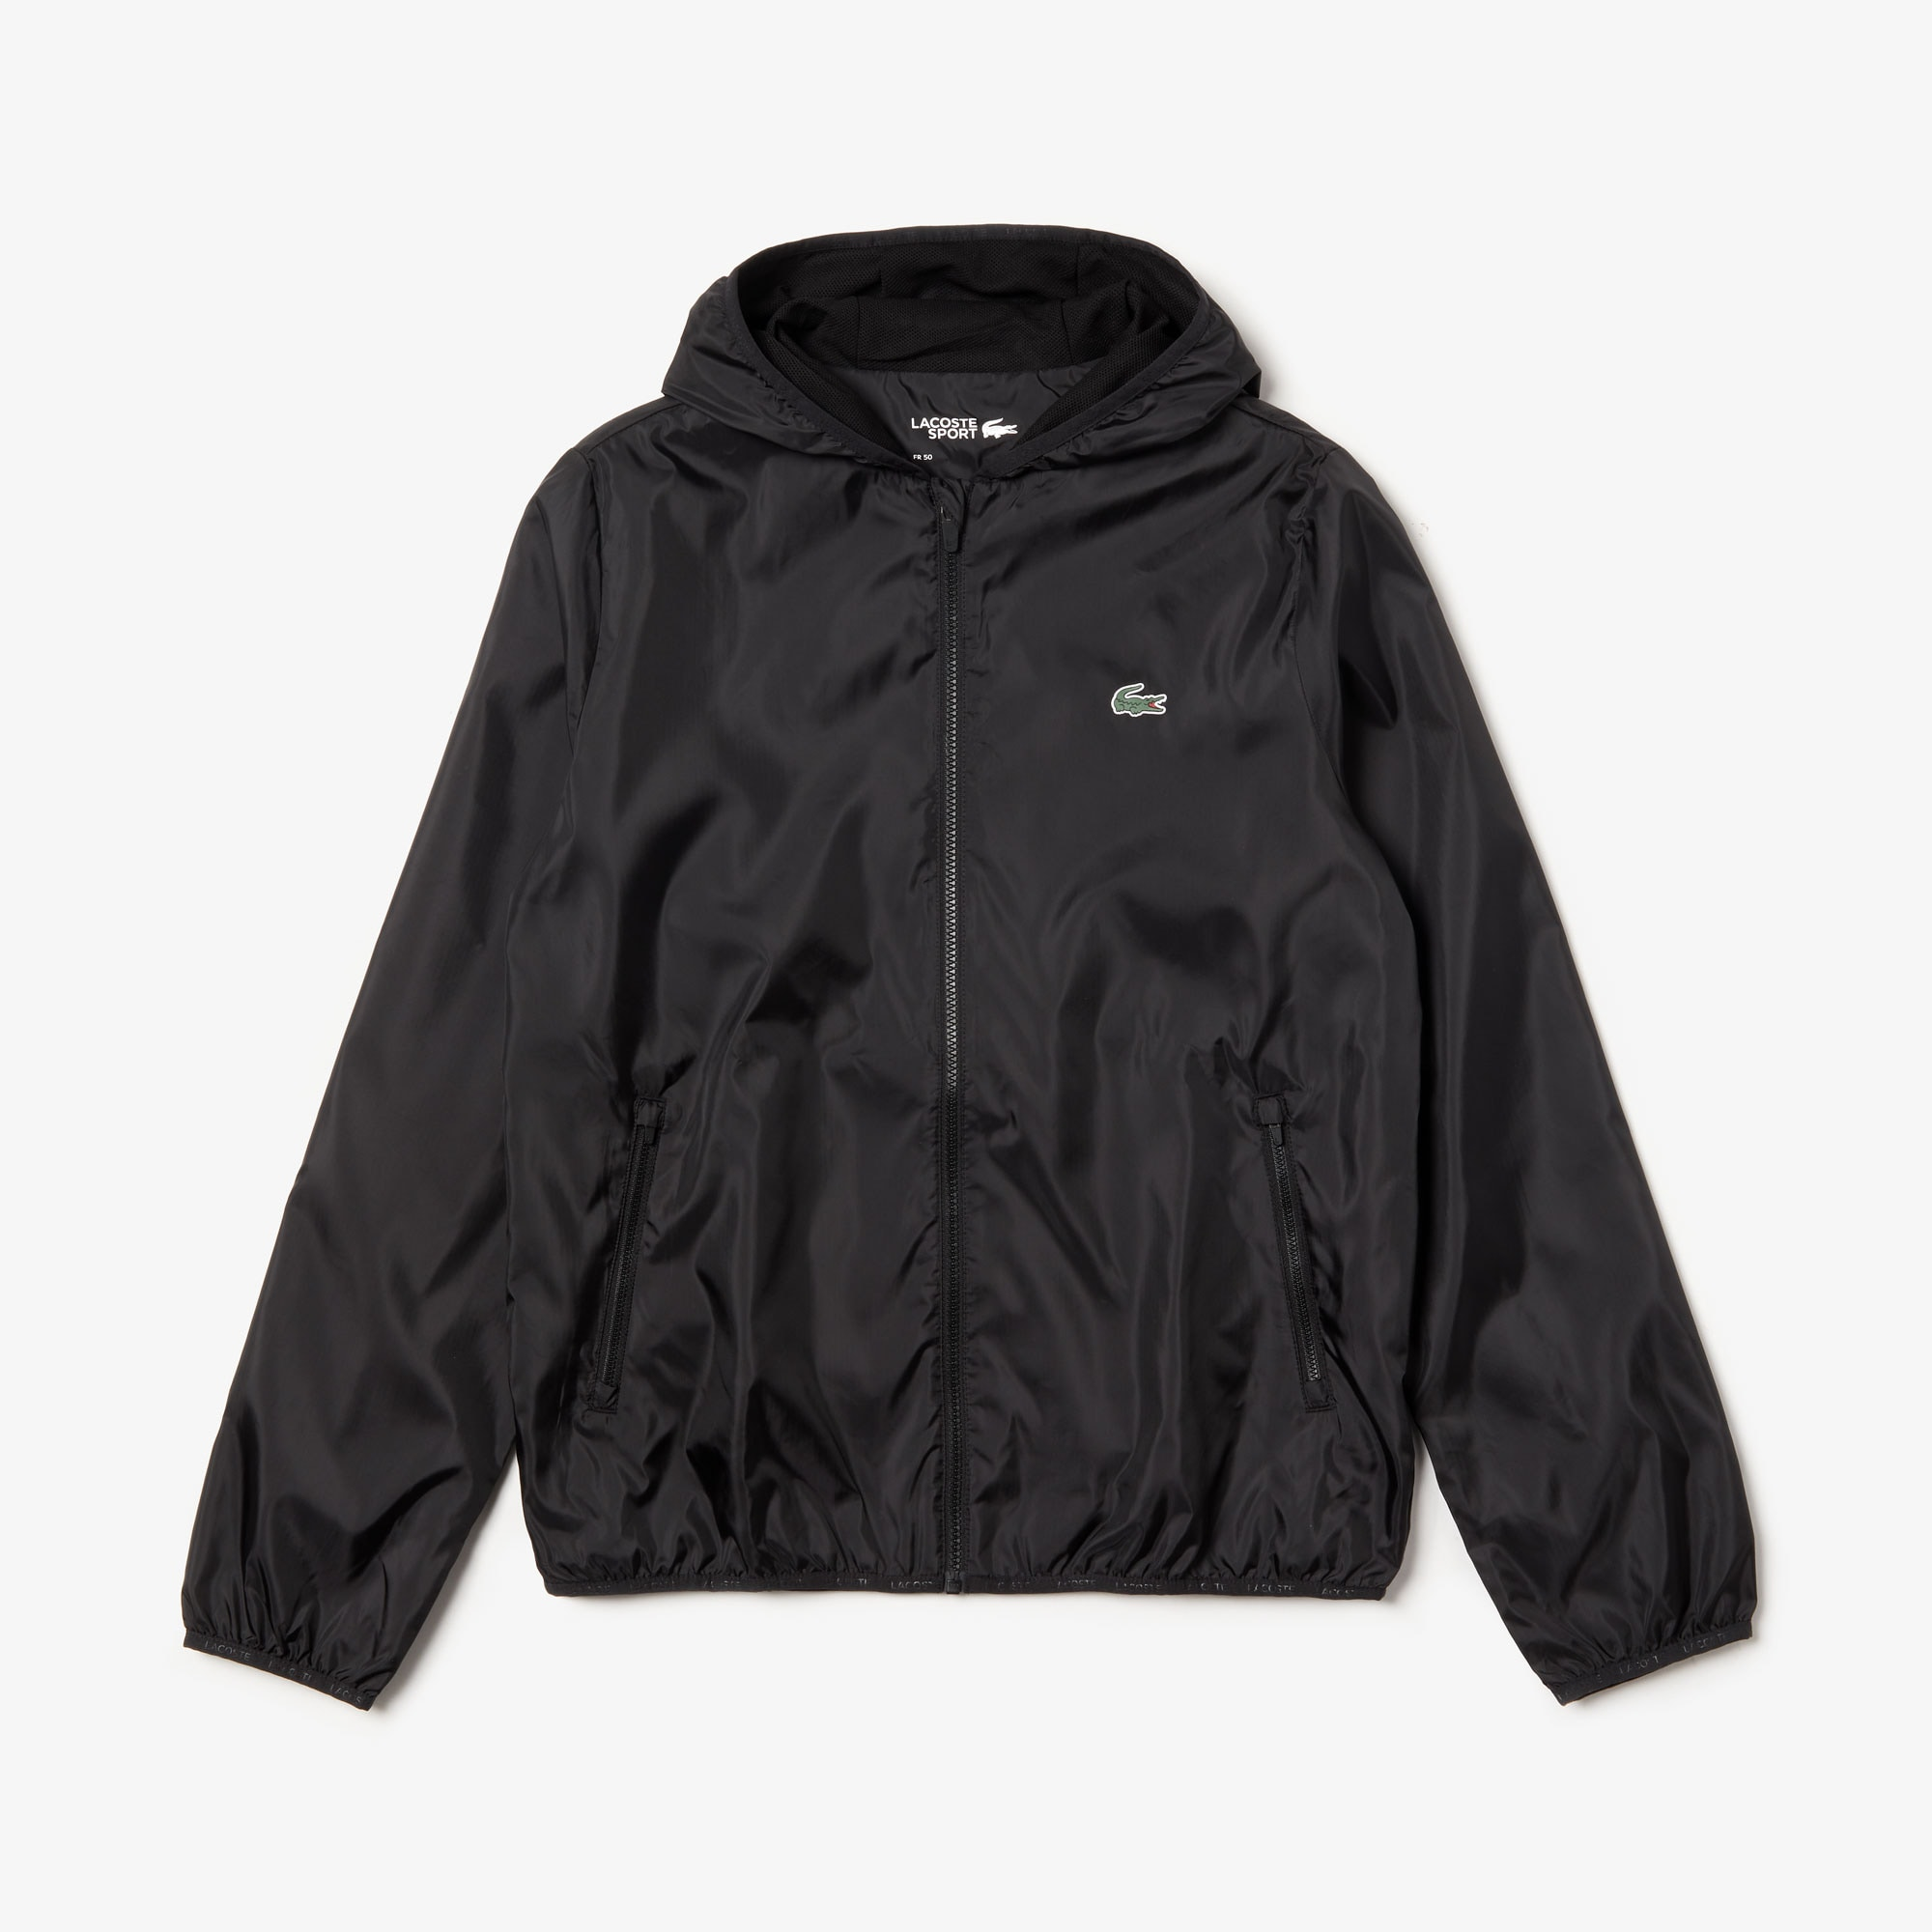 cb9805d8 Men's Jackets and Coats | Lacoste Outerwear | LACOSTE